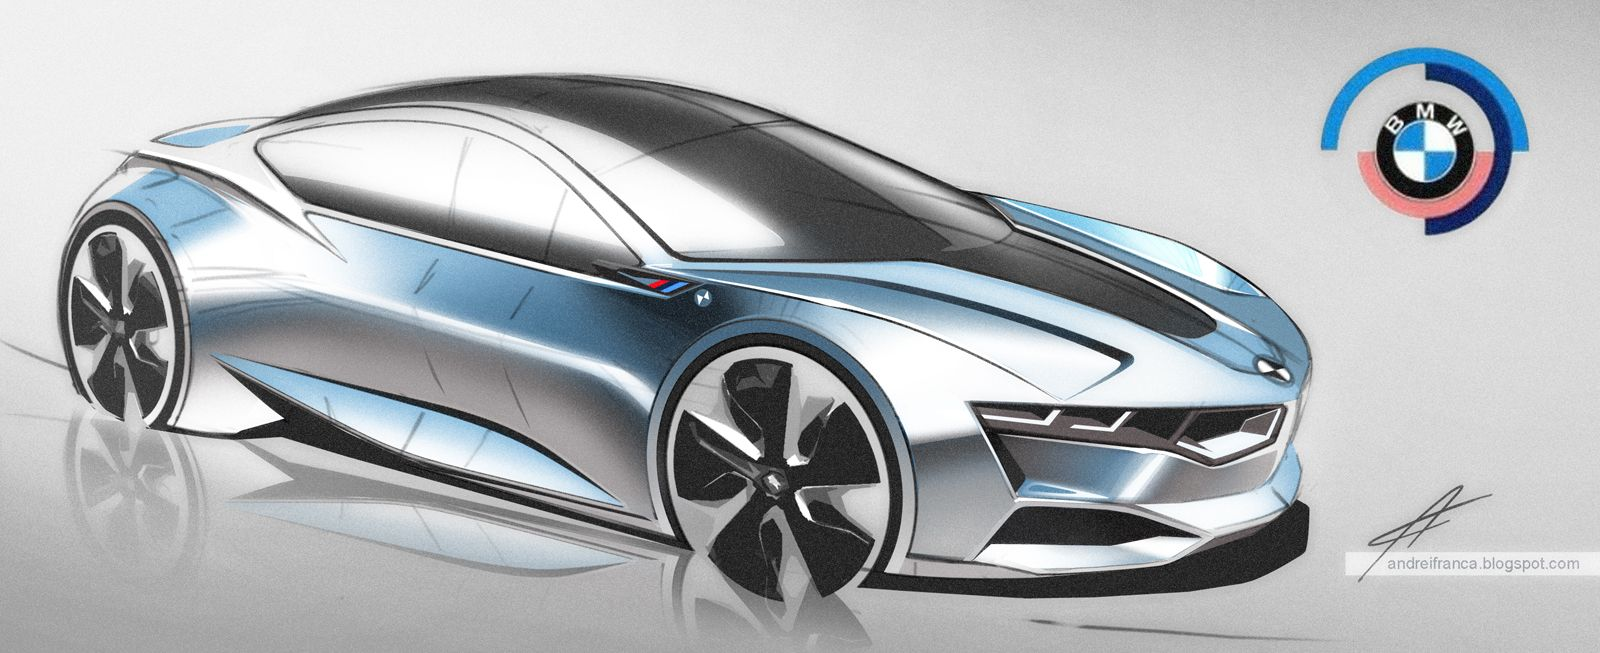 Bmw Design Sketch Carsketches Pinterest Car Design Sketch